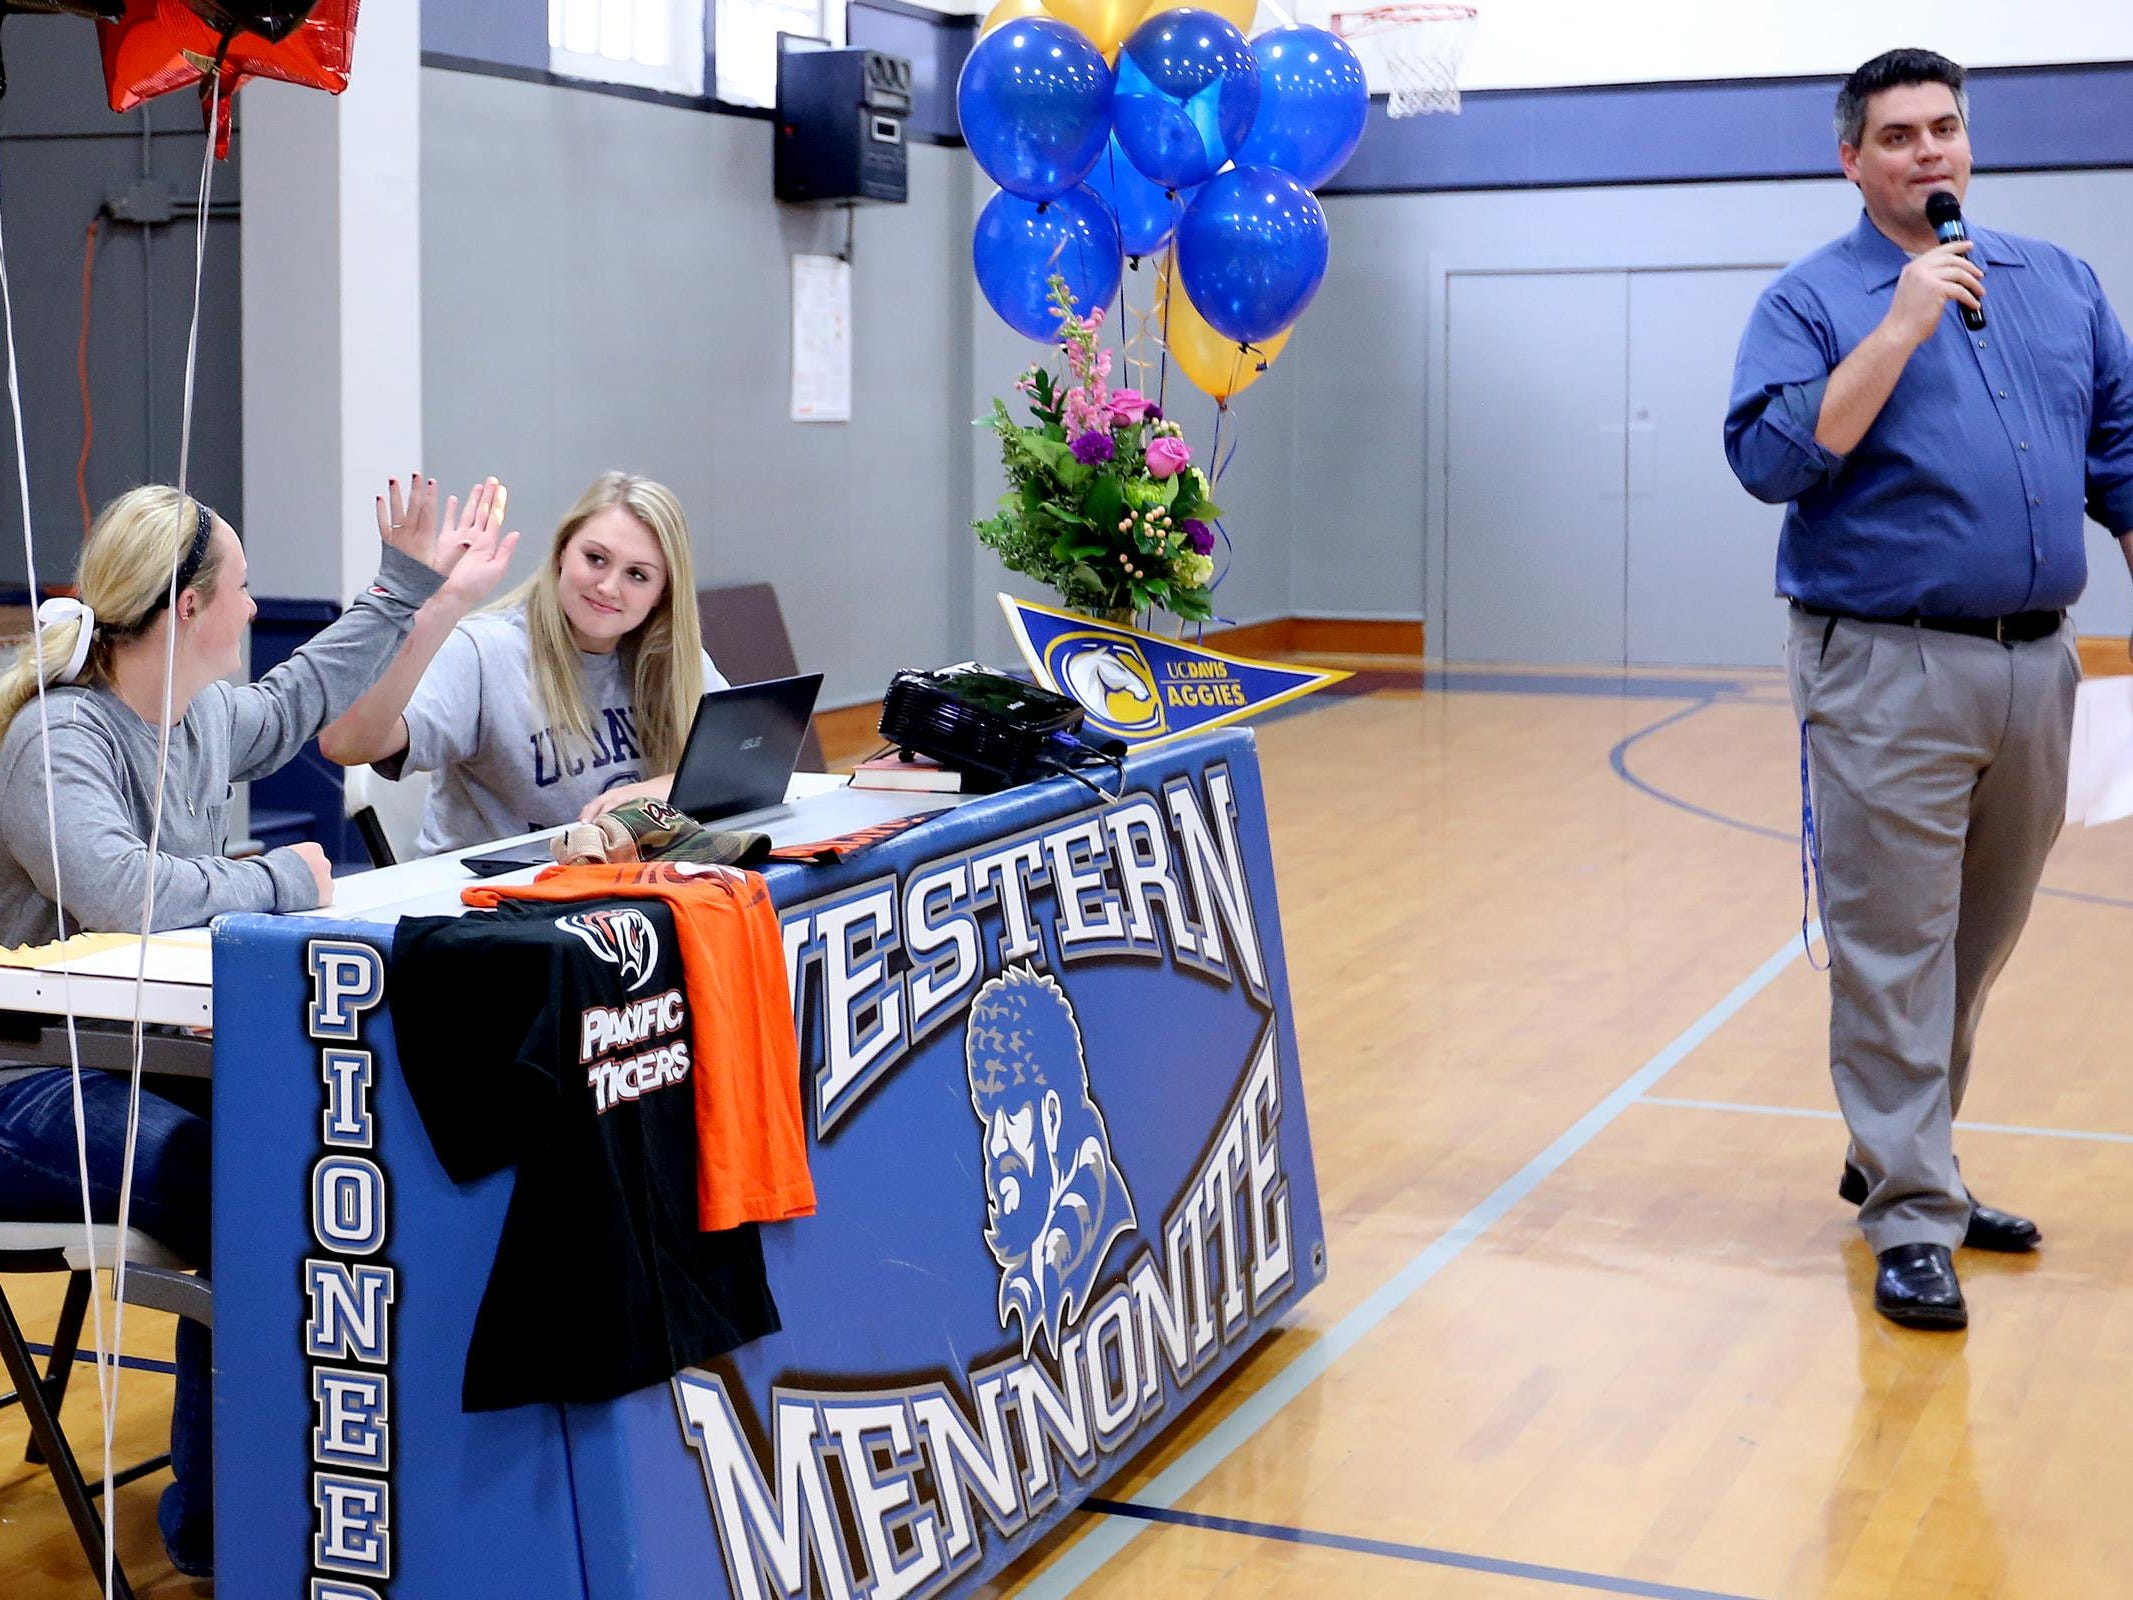 Maddie Hopper and Emma Gibb, center, high five while girl's basketball coach Robby Gilliam introduces them before they sign letters of intent to play softball with the University of the Pacific and basketball at UC Davis, respectively, at Western Mennonite High School in Salem on Wednesday, Nov. 11, 2015.